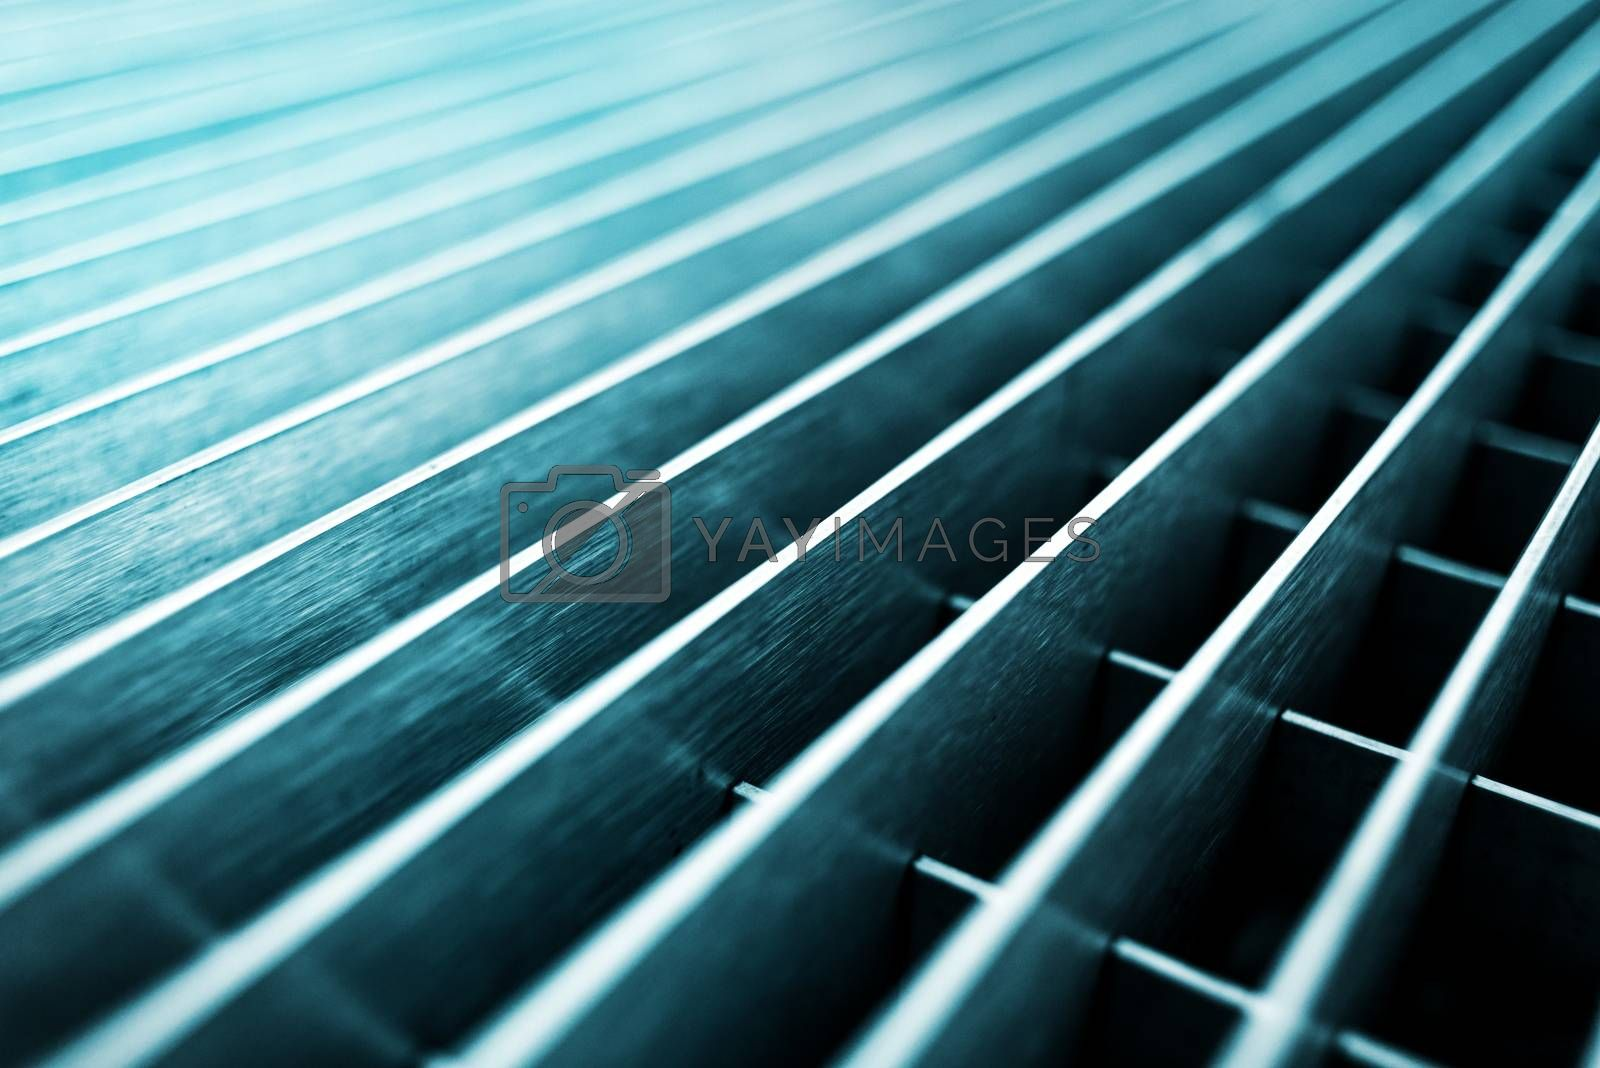 Abstract metal grid background, selective focus with shallow depth of field